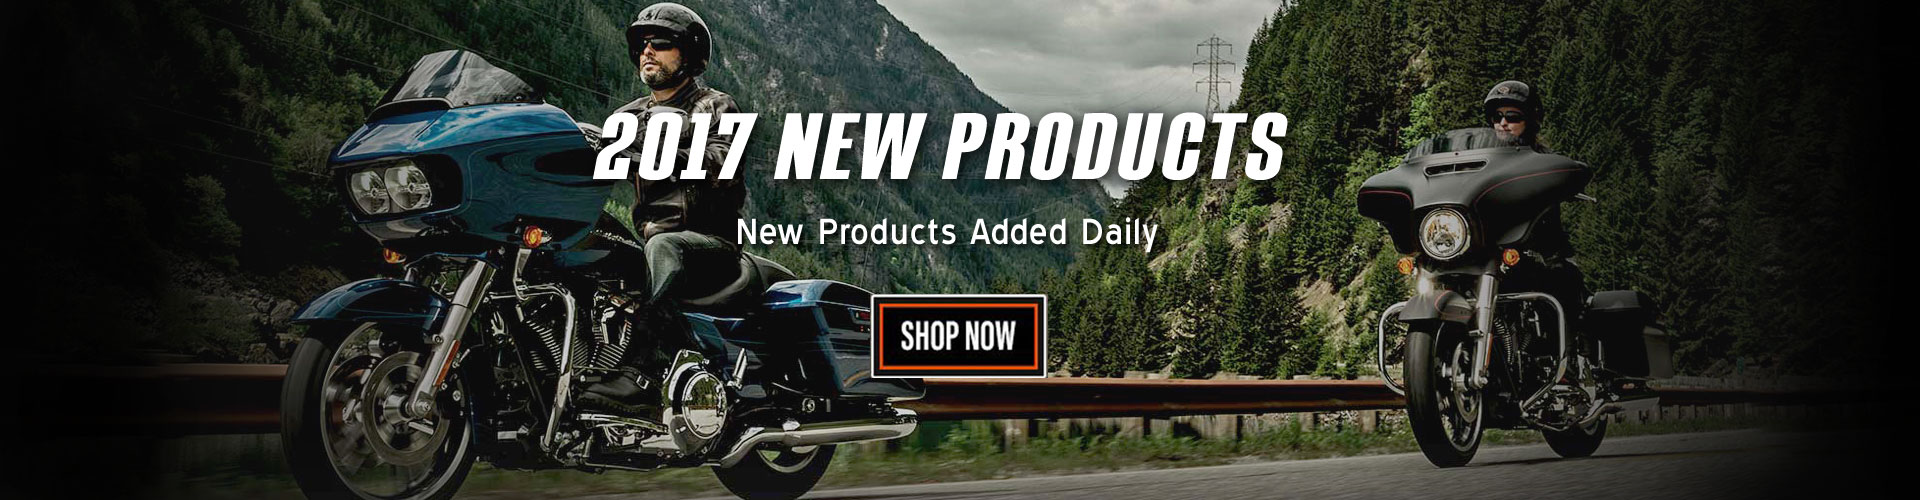 2017 Harley-Davidson Products